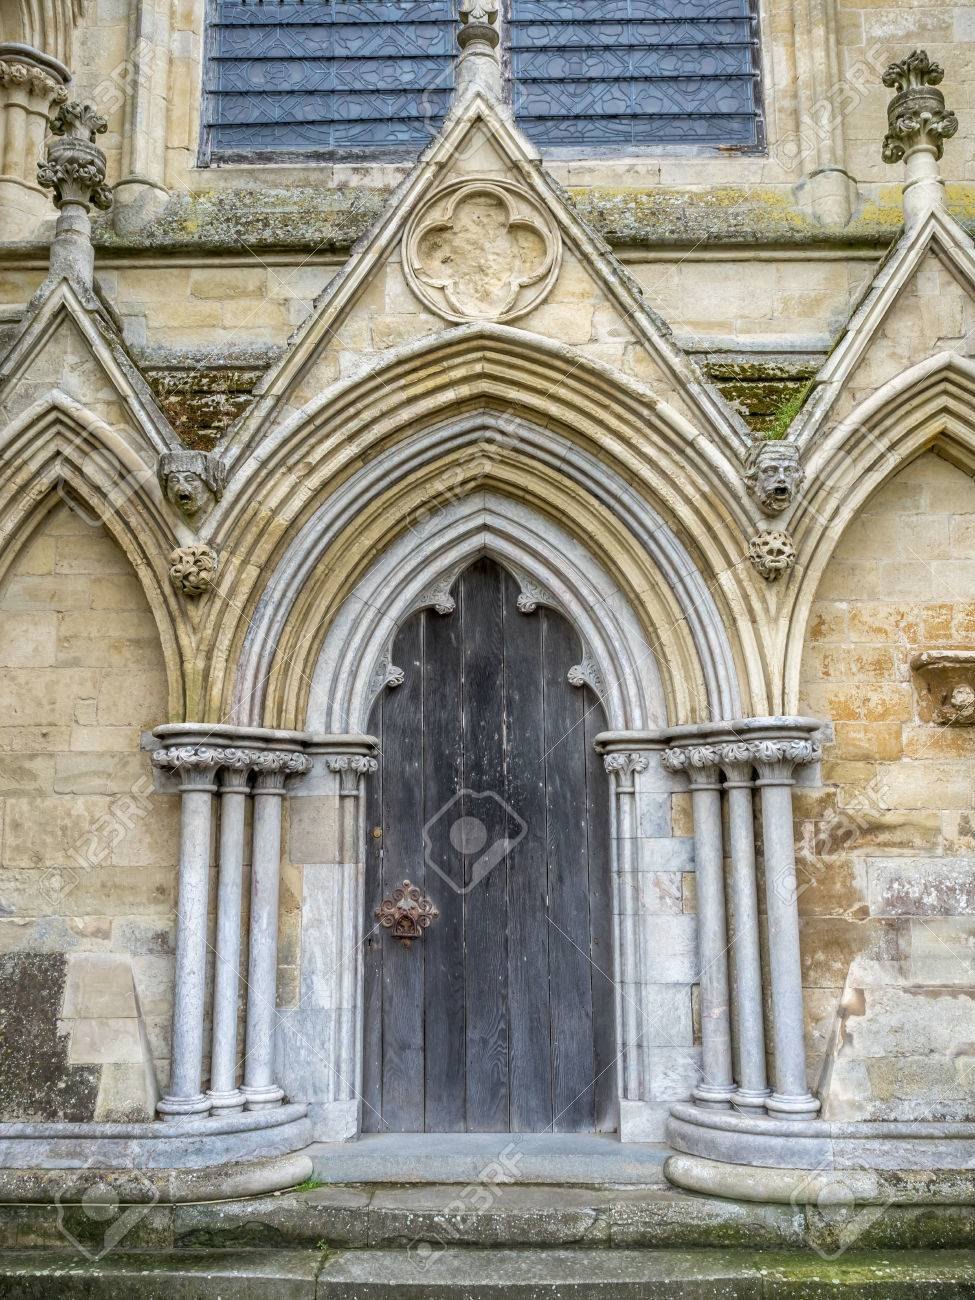 Door Arch Of Salisbury Cathedral Outstanding With English Gothic Architecture In England